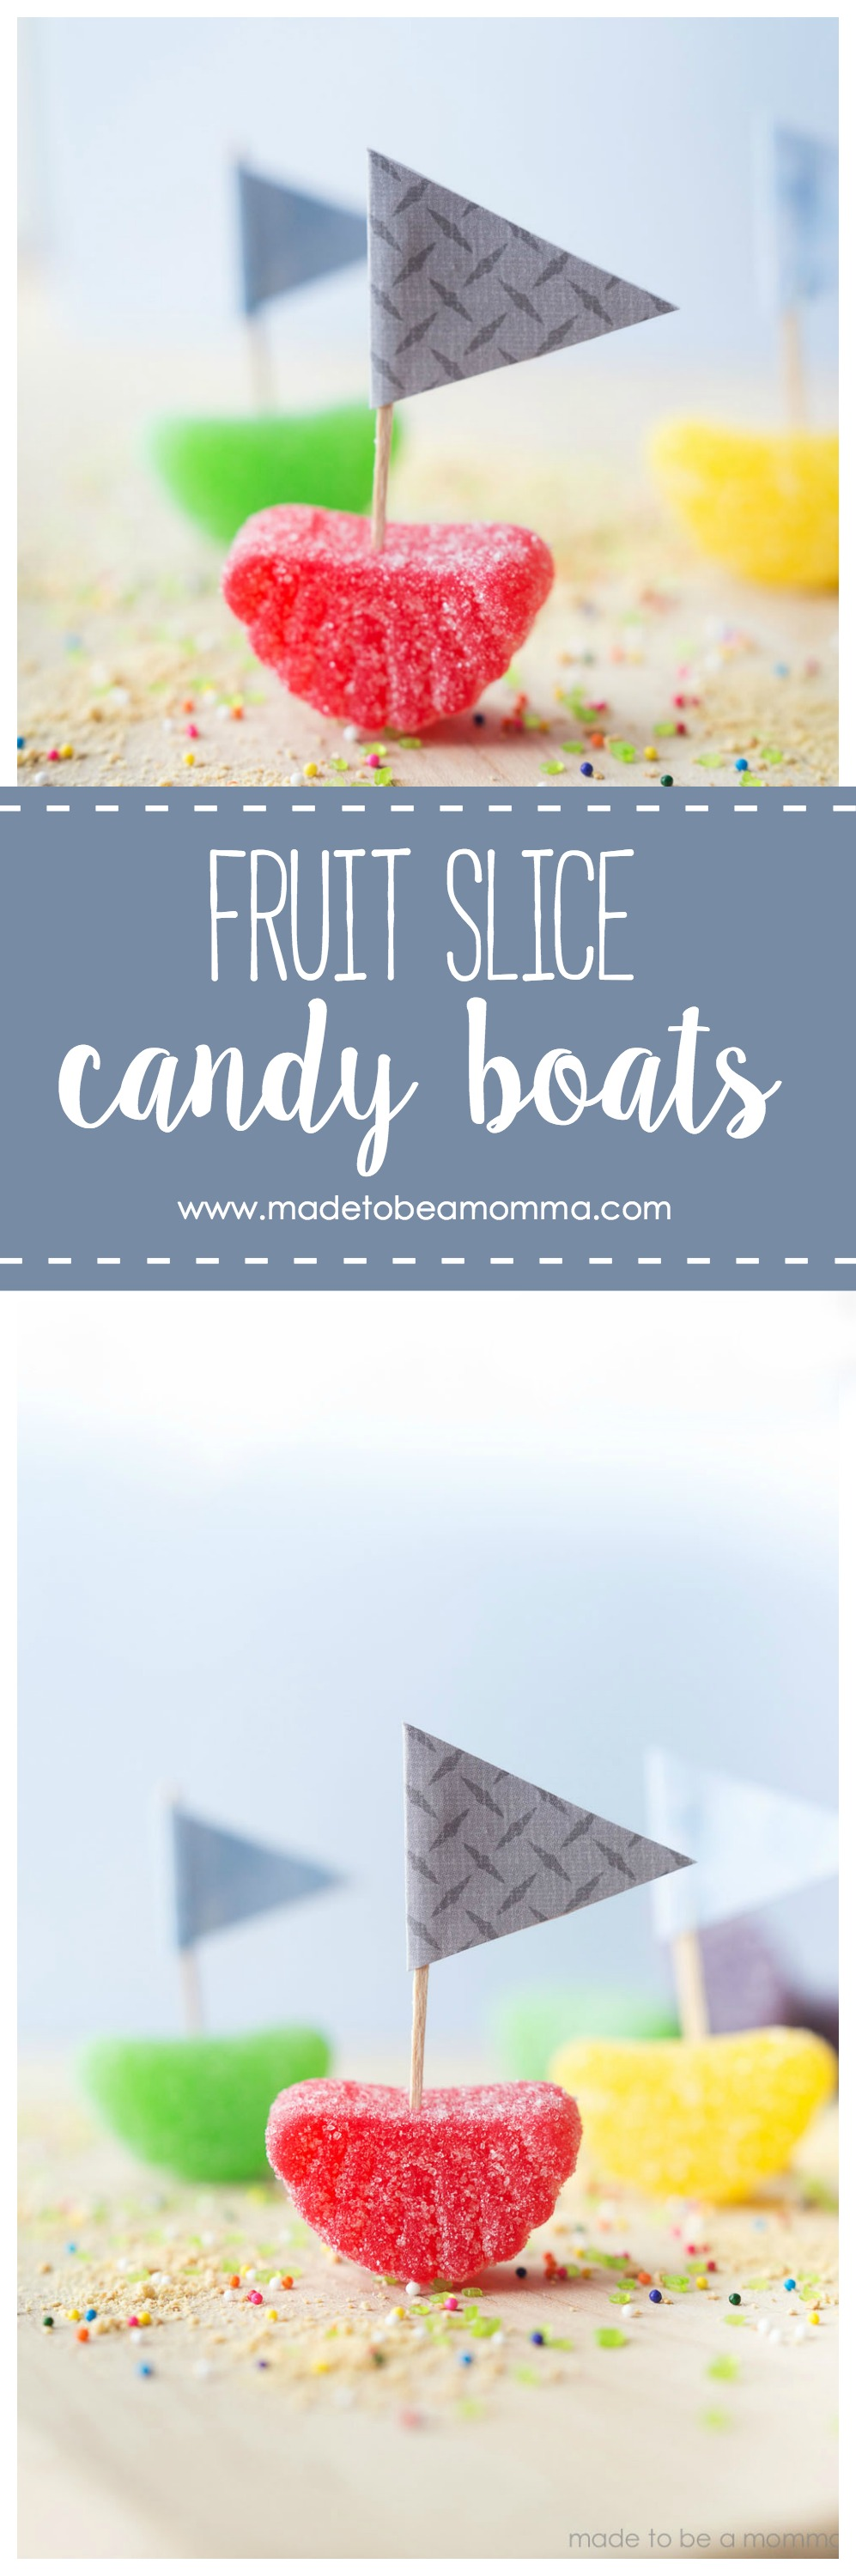 Fruit Slice Candy Boats from Made to be a Momma